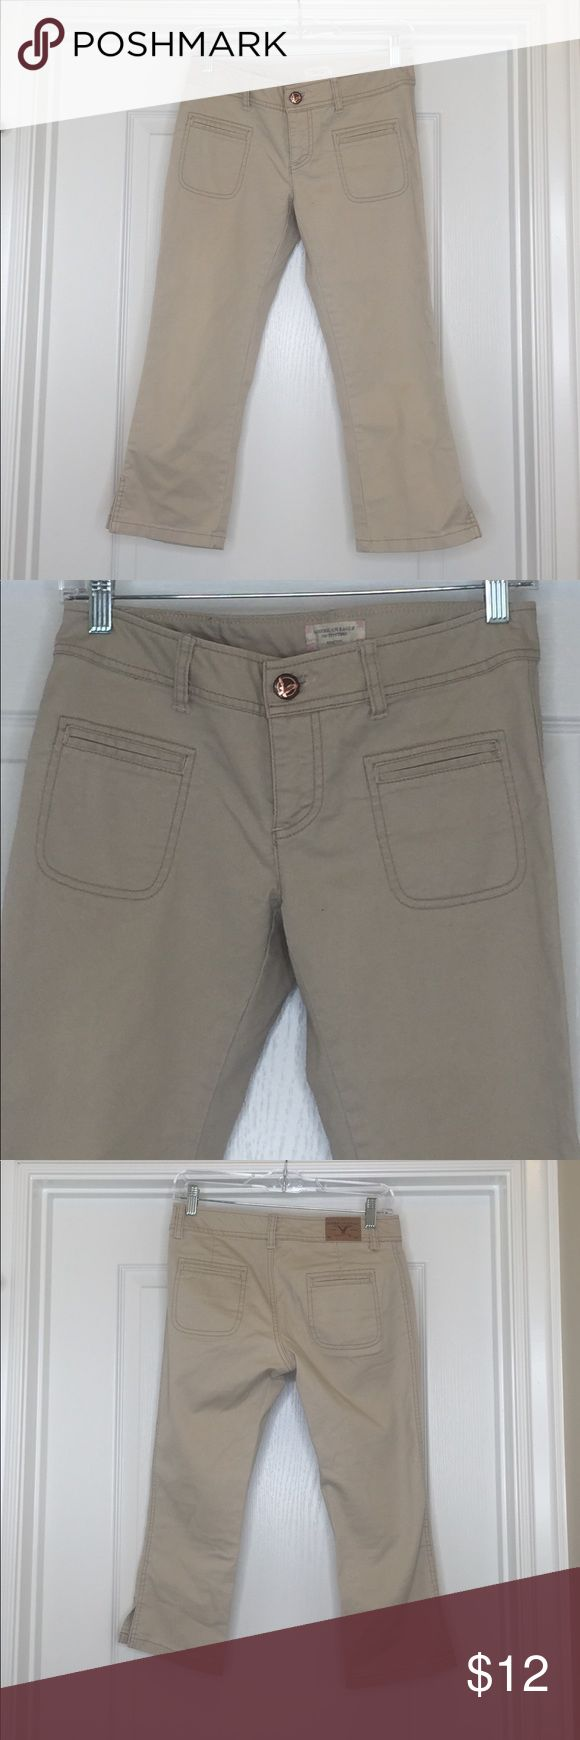 Sleek kaki Capri pants Very slimming, sleek kaki Capri pants American Eagle Outfitters Pants Capris